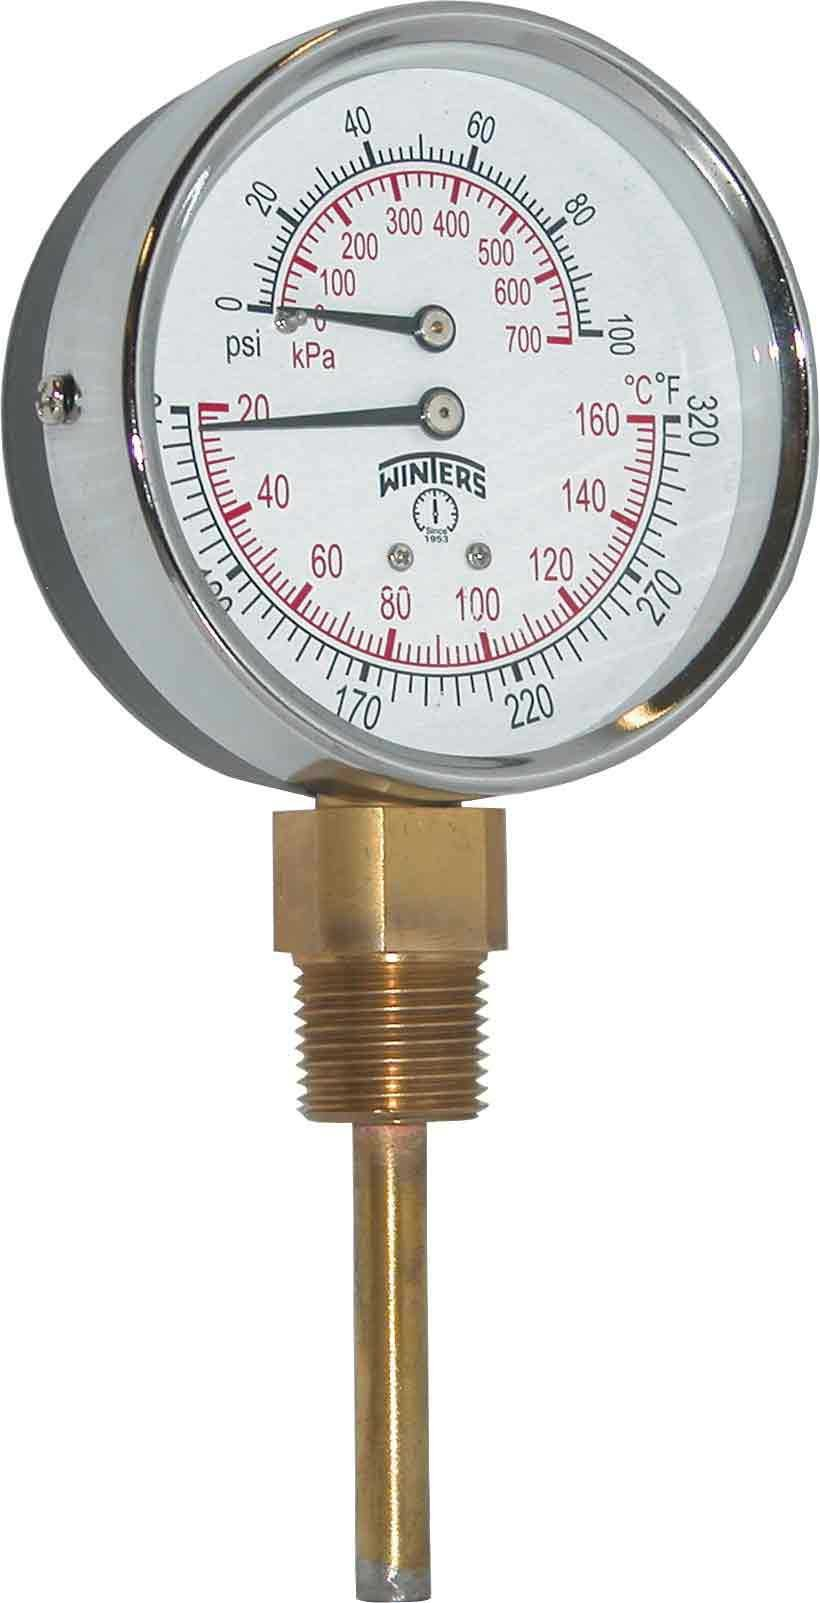 Winters TTD Series Steel Dual Scale Tridicator Thermometer with 2'' Stem, 0-100psi/kpa, 3'' Dial Display, ±3-2-3% Accuracy, 1/2'' NPT Bottom Mount, 70-320 Deg F/C